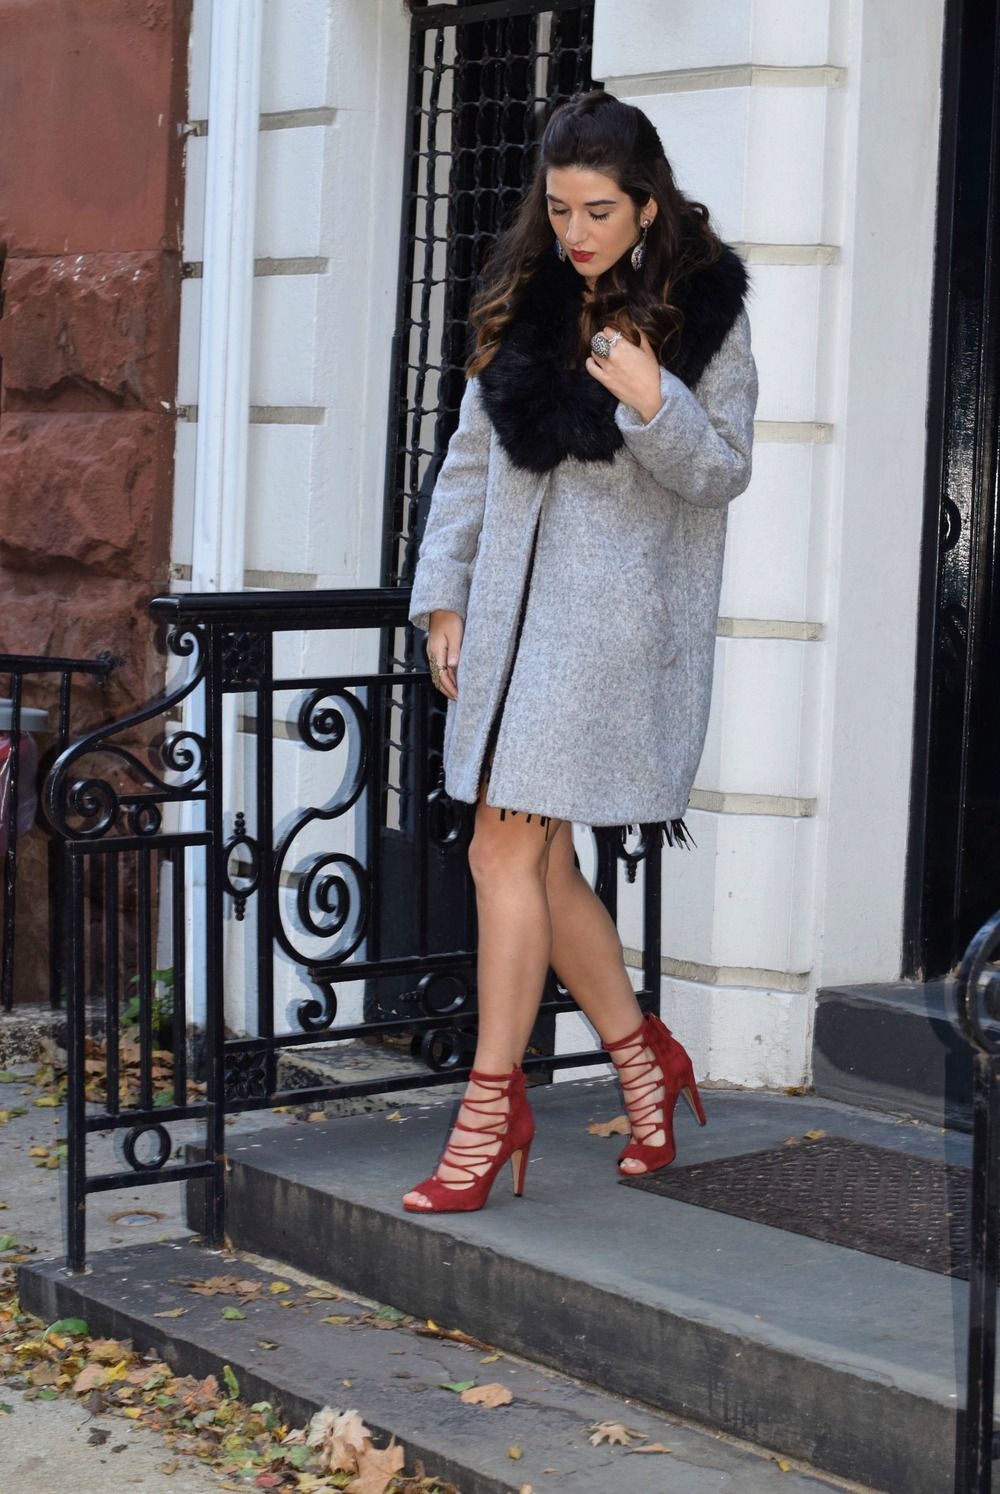 Dripping In Diamonds Elahn Jewels Louboutins & Love Fashion Blog Esther Santer NYC Street Style Blogger Black Fur Stole Earrings Jewelry Grey Peacoat Coat Winter Wear Shopping Beauty Chic Rings Red Heels Sandals Inspo Inspiration Hair OOTD Outfit Zara.jpg